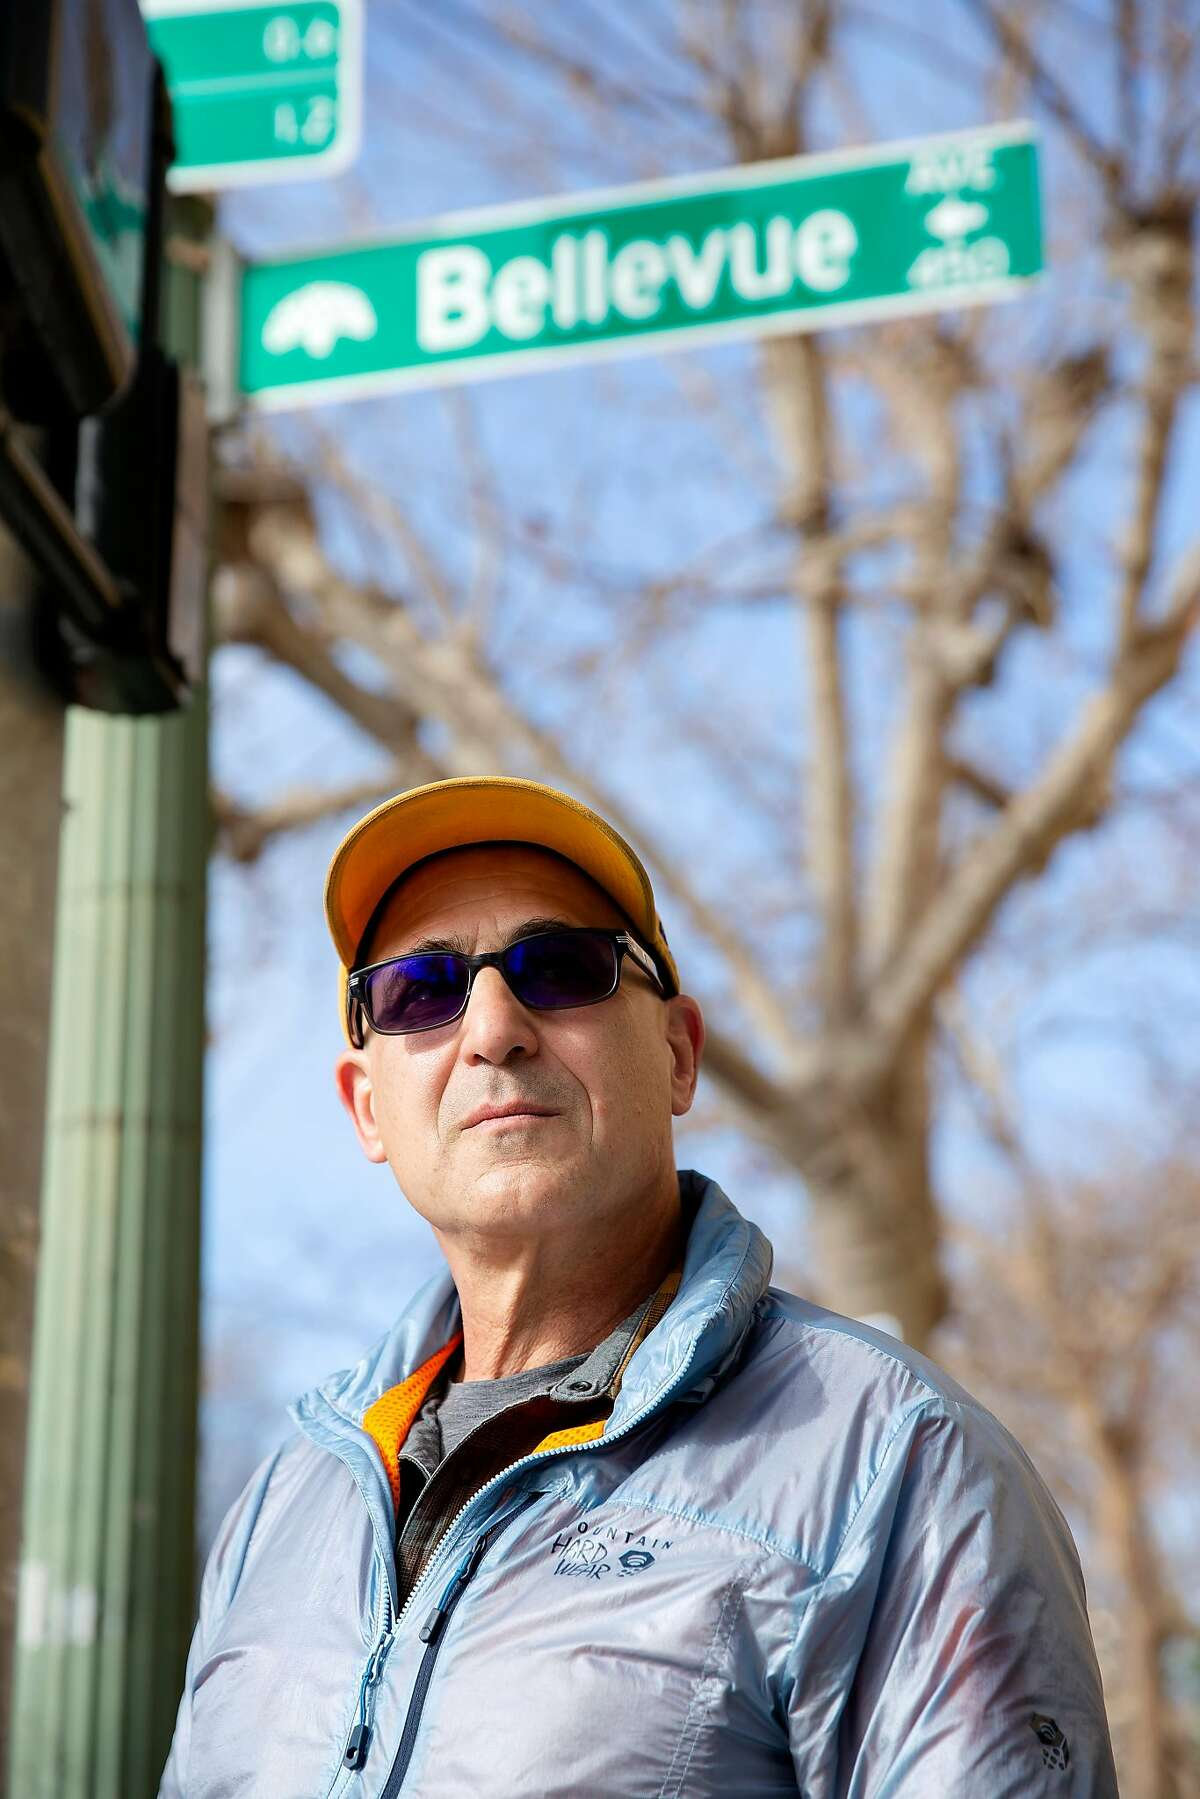 Randy Lyman stands outside of Perch, a local coffee shop he often frequents in Oakland, Calif. on Monday, January 27, 2020. Just across the street is the corner where Lyman was robbed at gun point just after midnight on January 18 at the corner of Grand Avenue and Bellevue Avenue in Oakland. After being punched in the face and held at gunpoint the robbers took both his wallet and phone before leaving in a nearby car. Lyman's robbery was one of many that have been occurring in Oakland involving getaway cars.